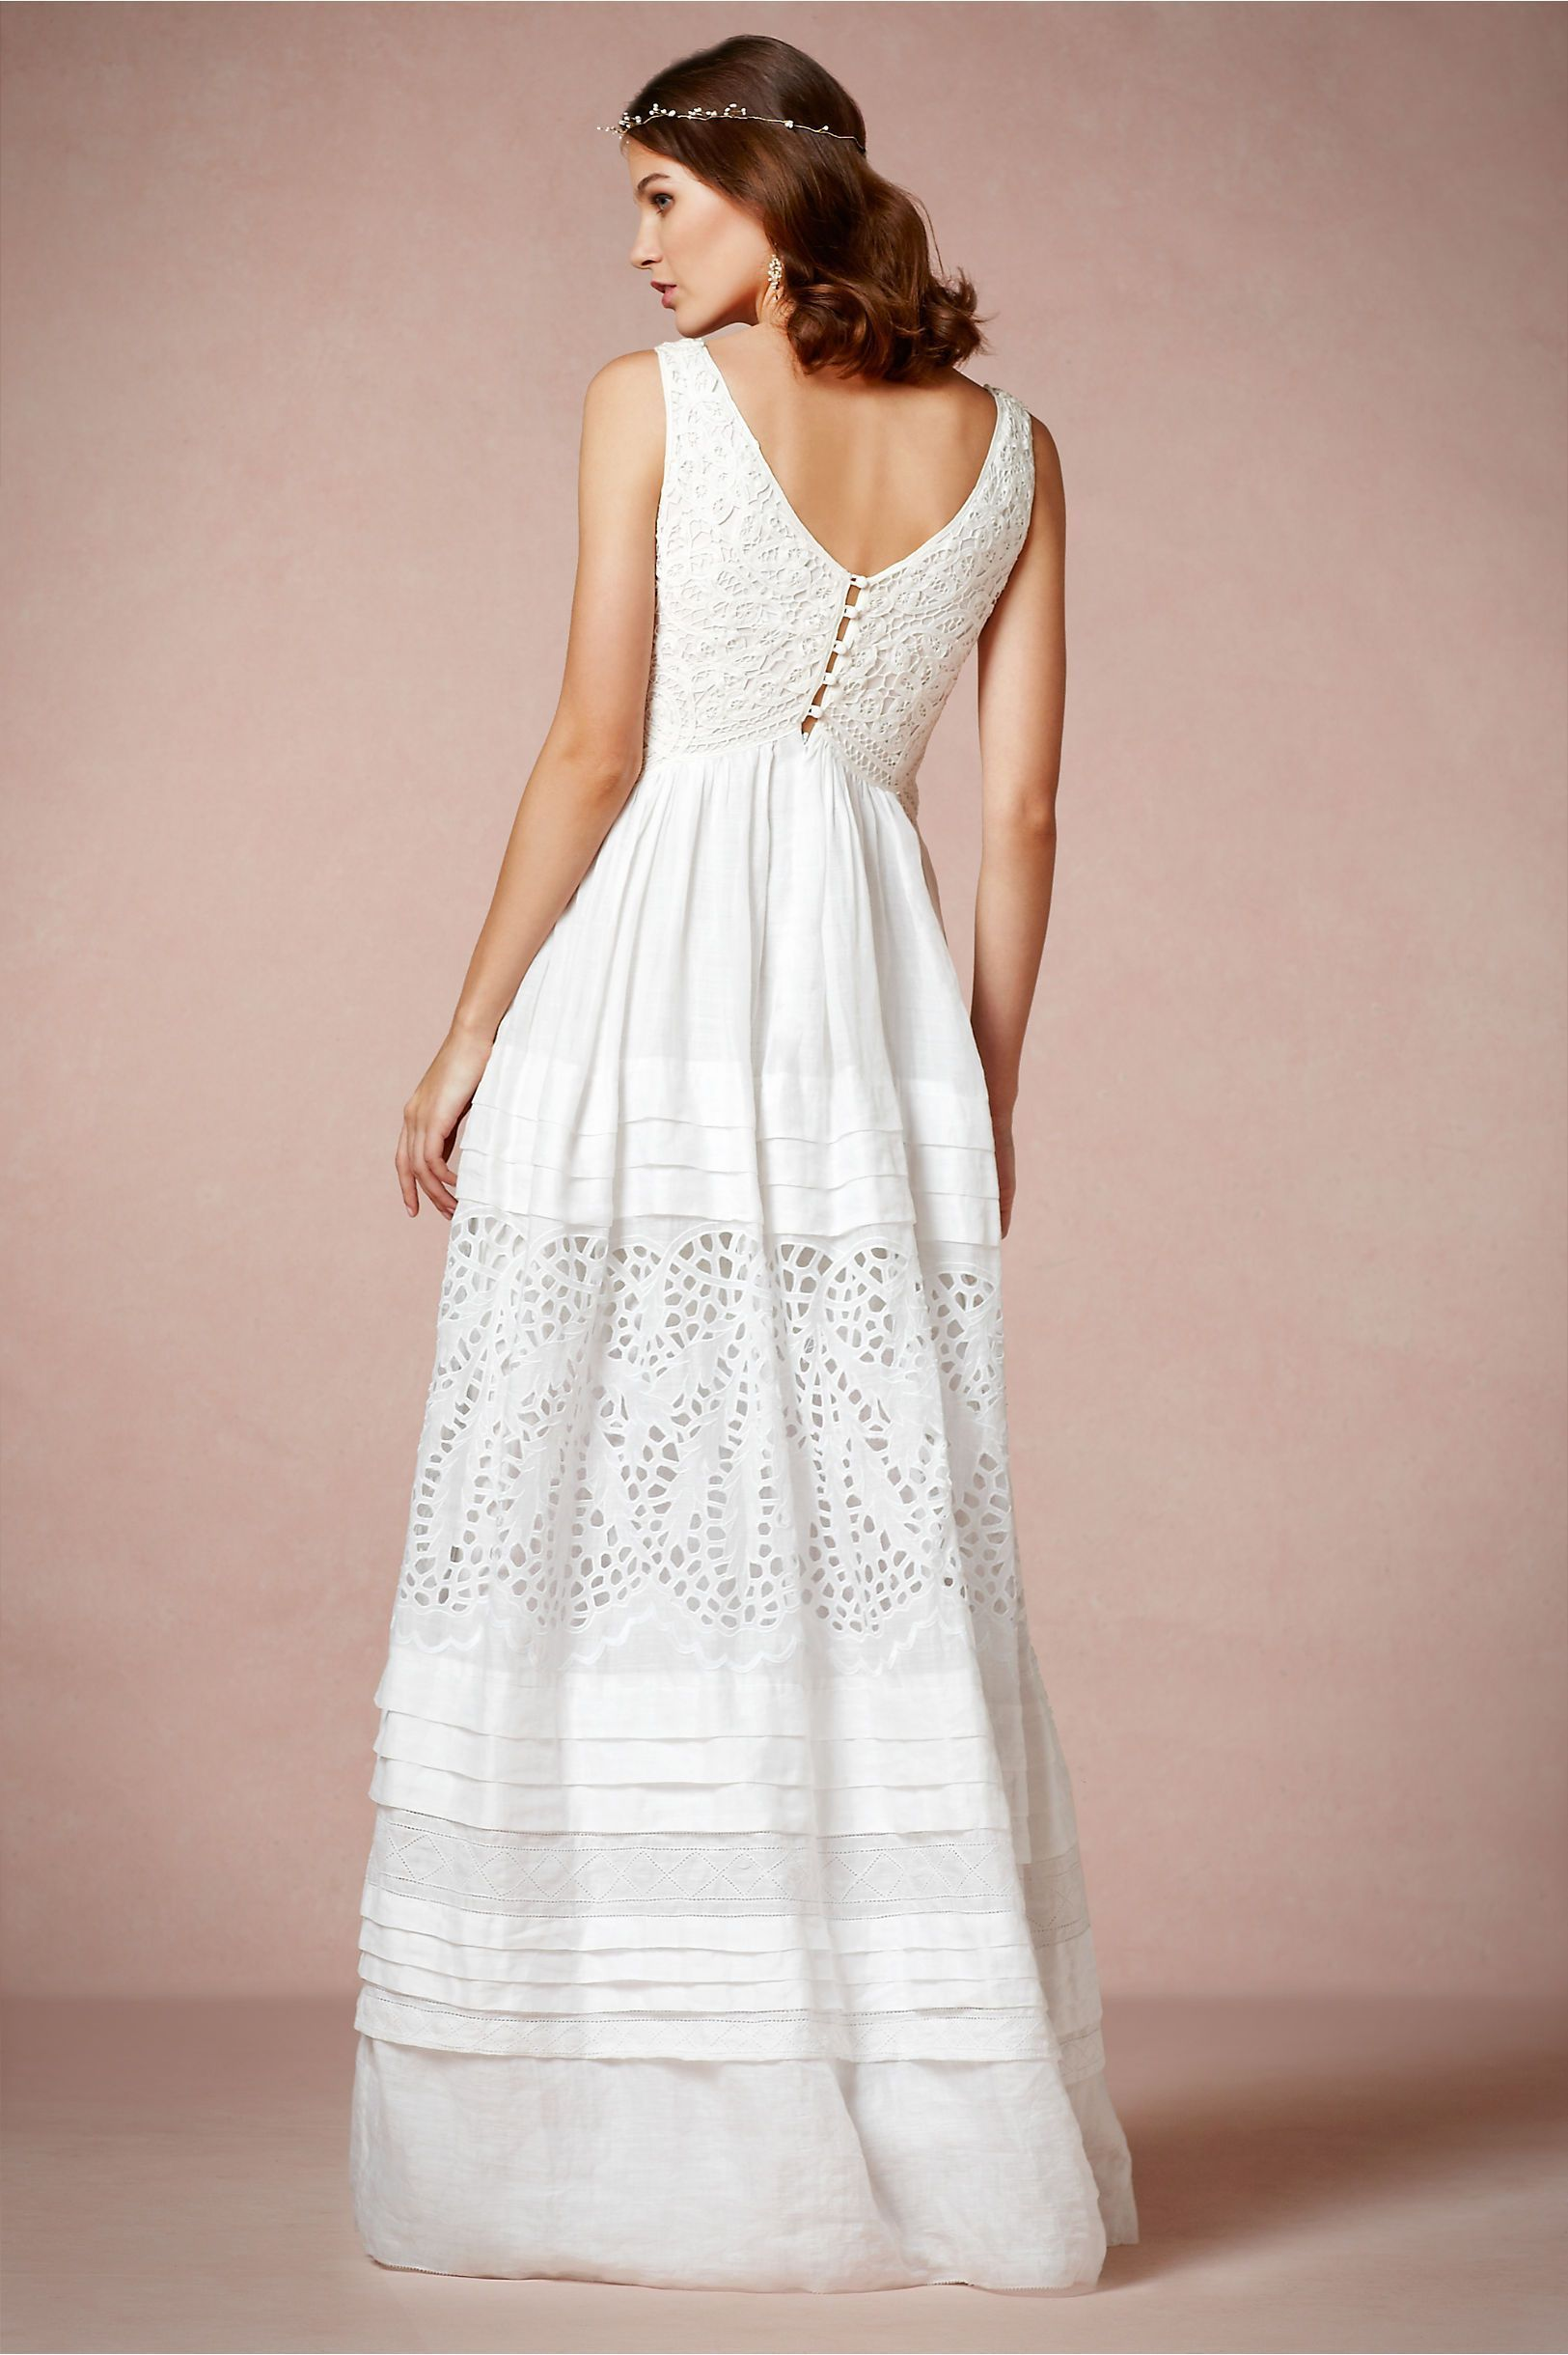 Lace and Ramie Gown from BHLDN #zivilhochzeitskleider Lace and Ramie Gown from BHLDN #zivilhochzeitskleider Lace and Ramie Gown from BHLDN #zivilhochzeitskleider Lace and Ramie Gown from BHLDN #zivilhochzeitskleider